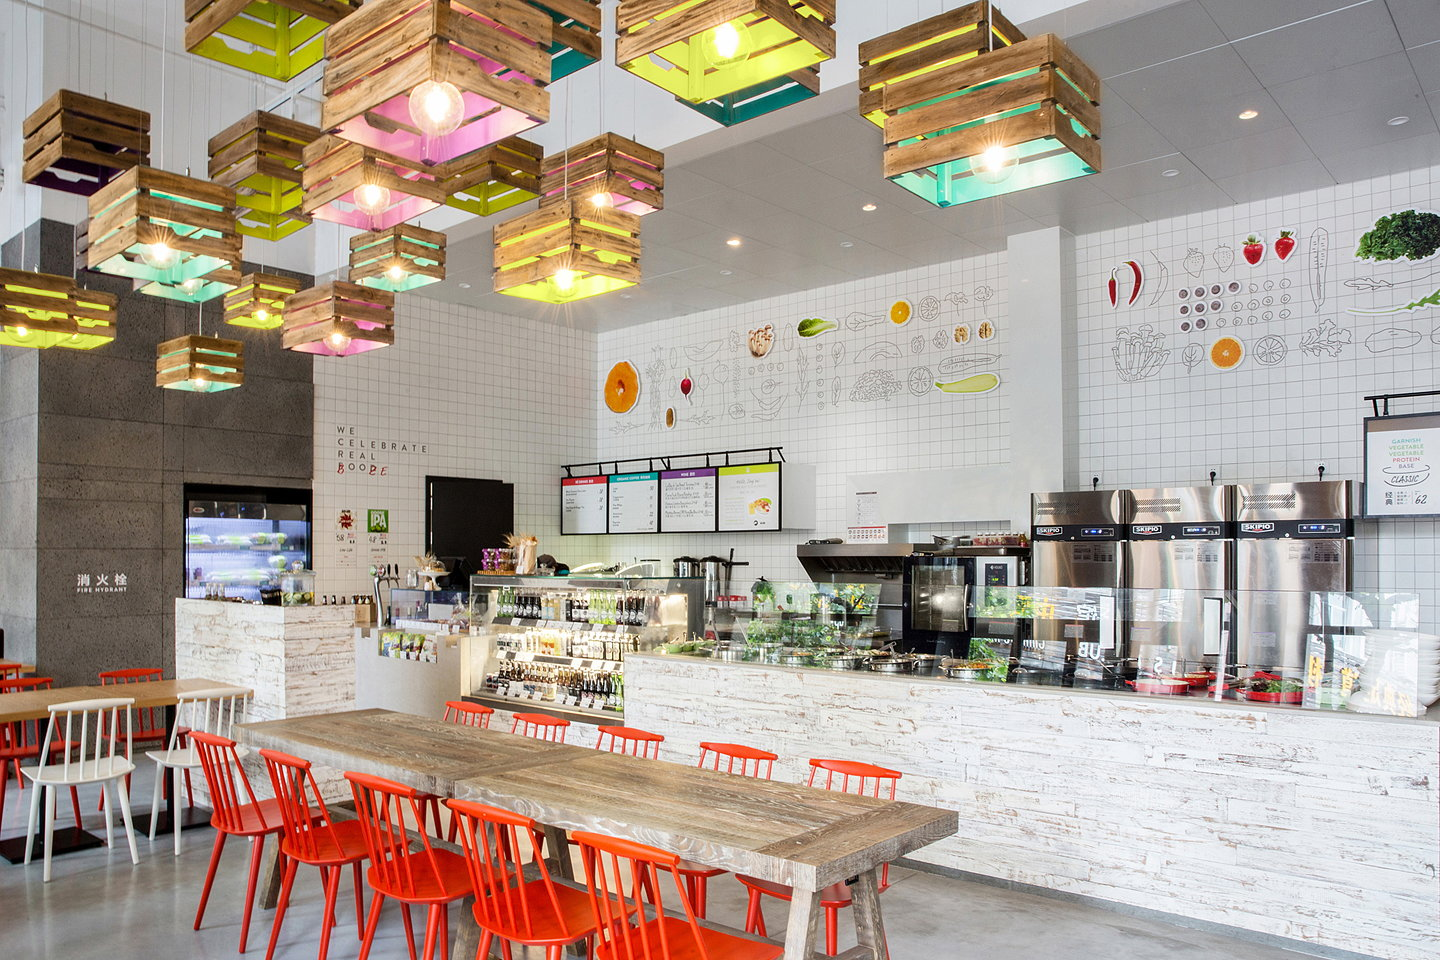 Triad china designs second store for hunter gatherer in